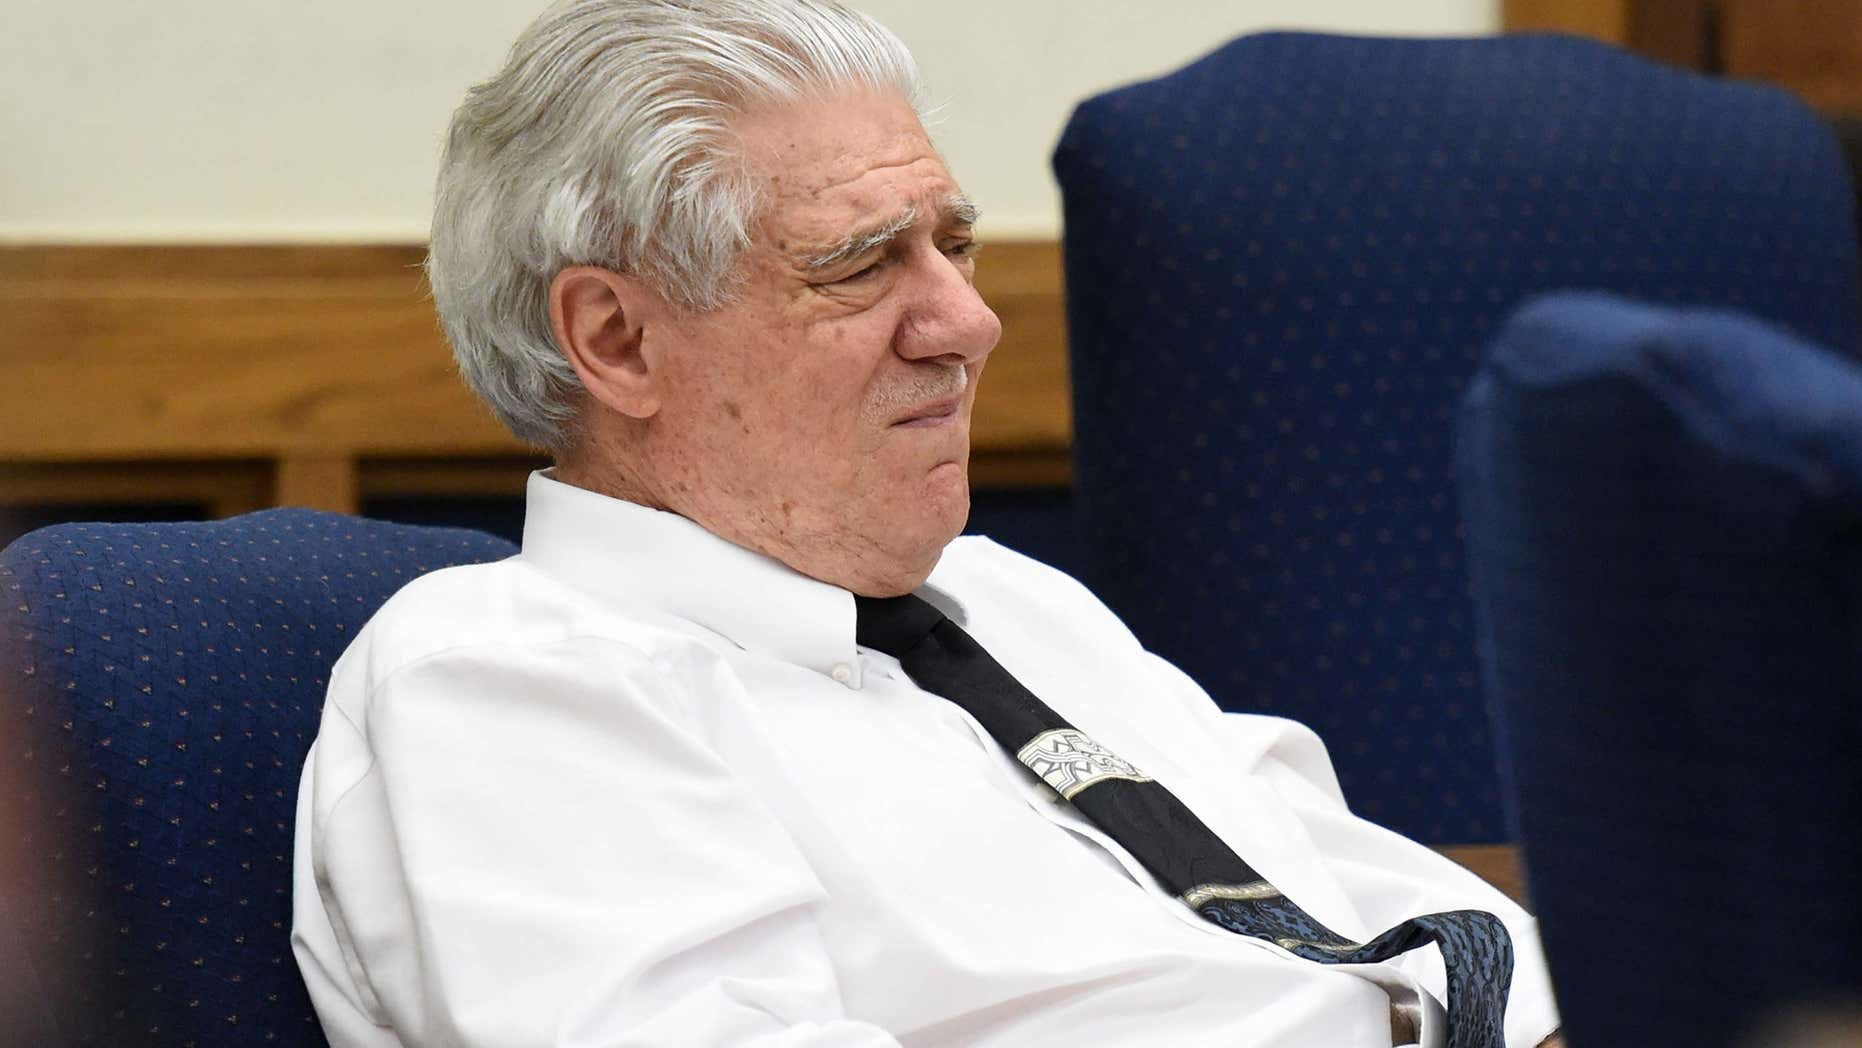 May 27, 2015: In this file photo, Wayne Burgarello listens as a witness takes the stand at the Washoe County District Court, in Reno, Nev.